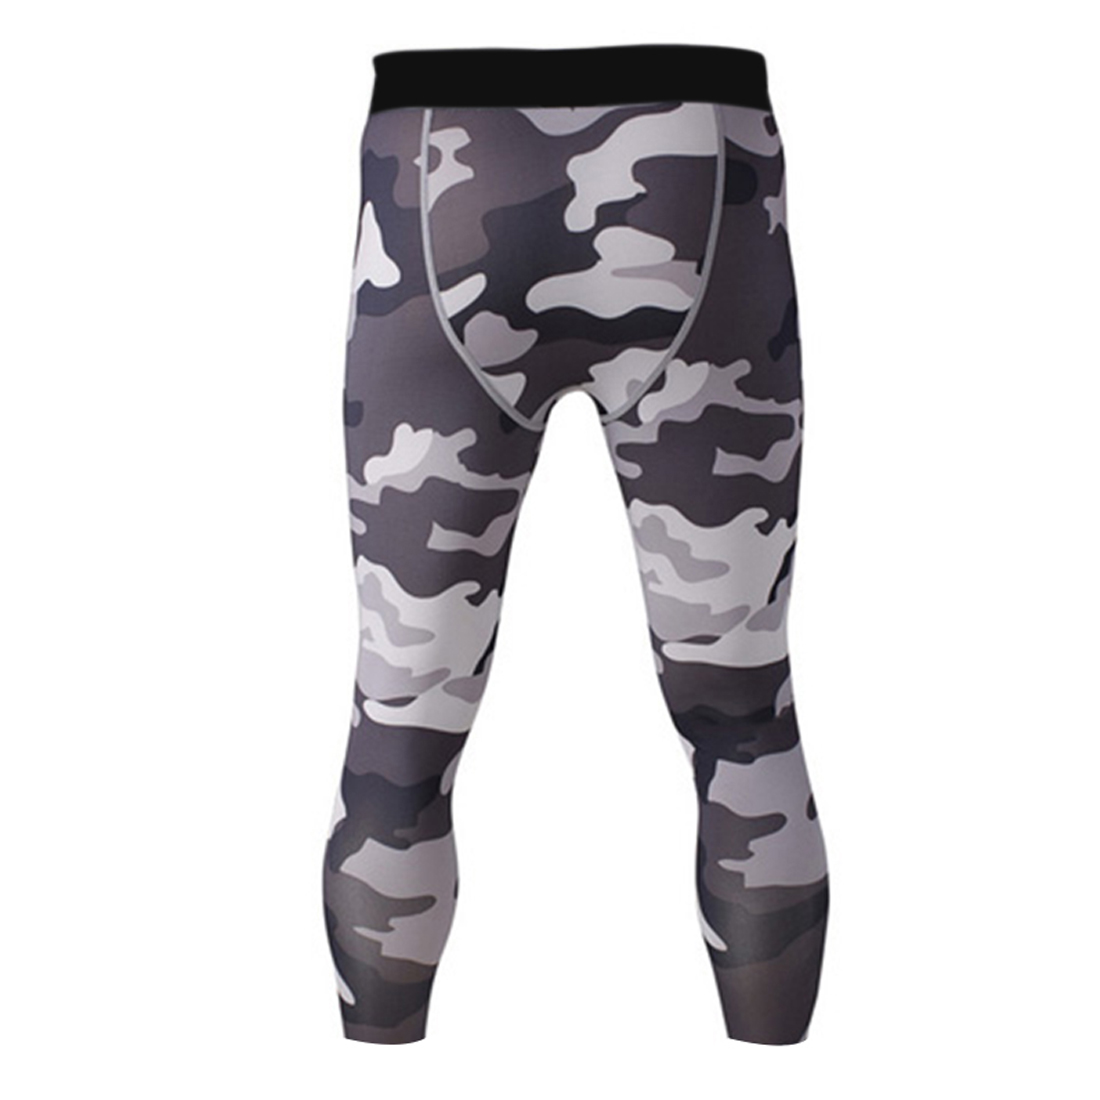 Fitness Leggings Camo: Mens Camo Compression Pants Gym Fitness Base Layers Sweat